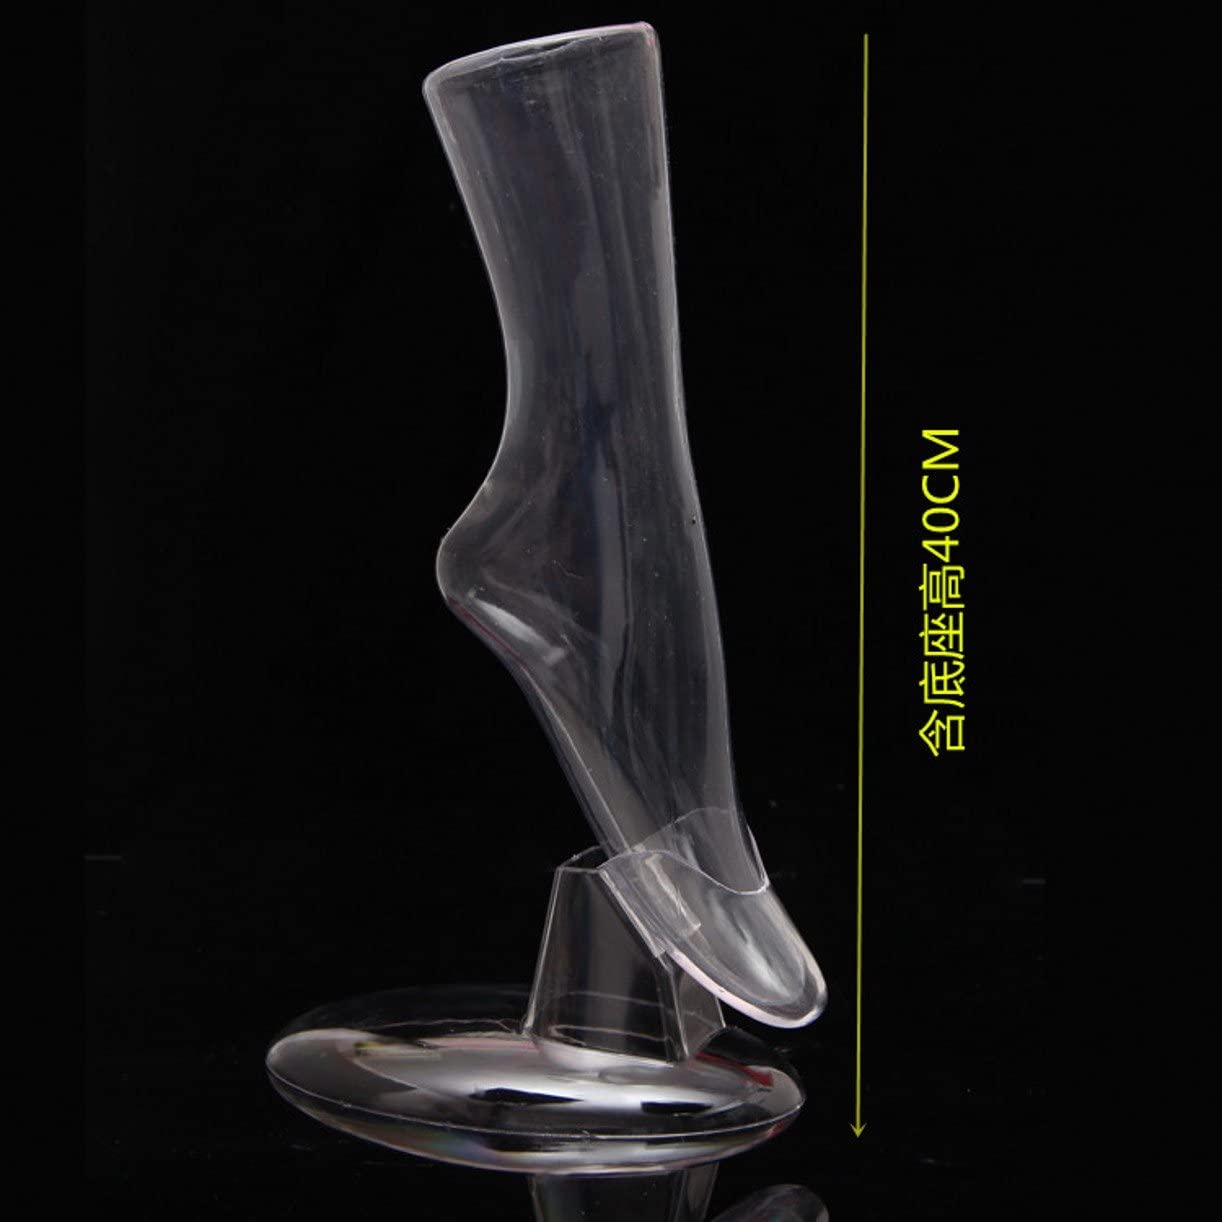 WellieSTR 1 Clear Plastic Mannequin Sock and Shoe Display Foot.